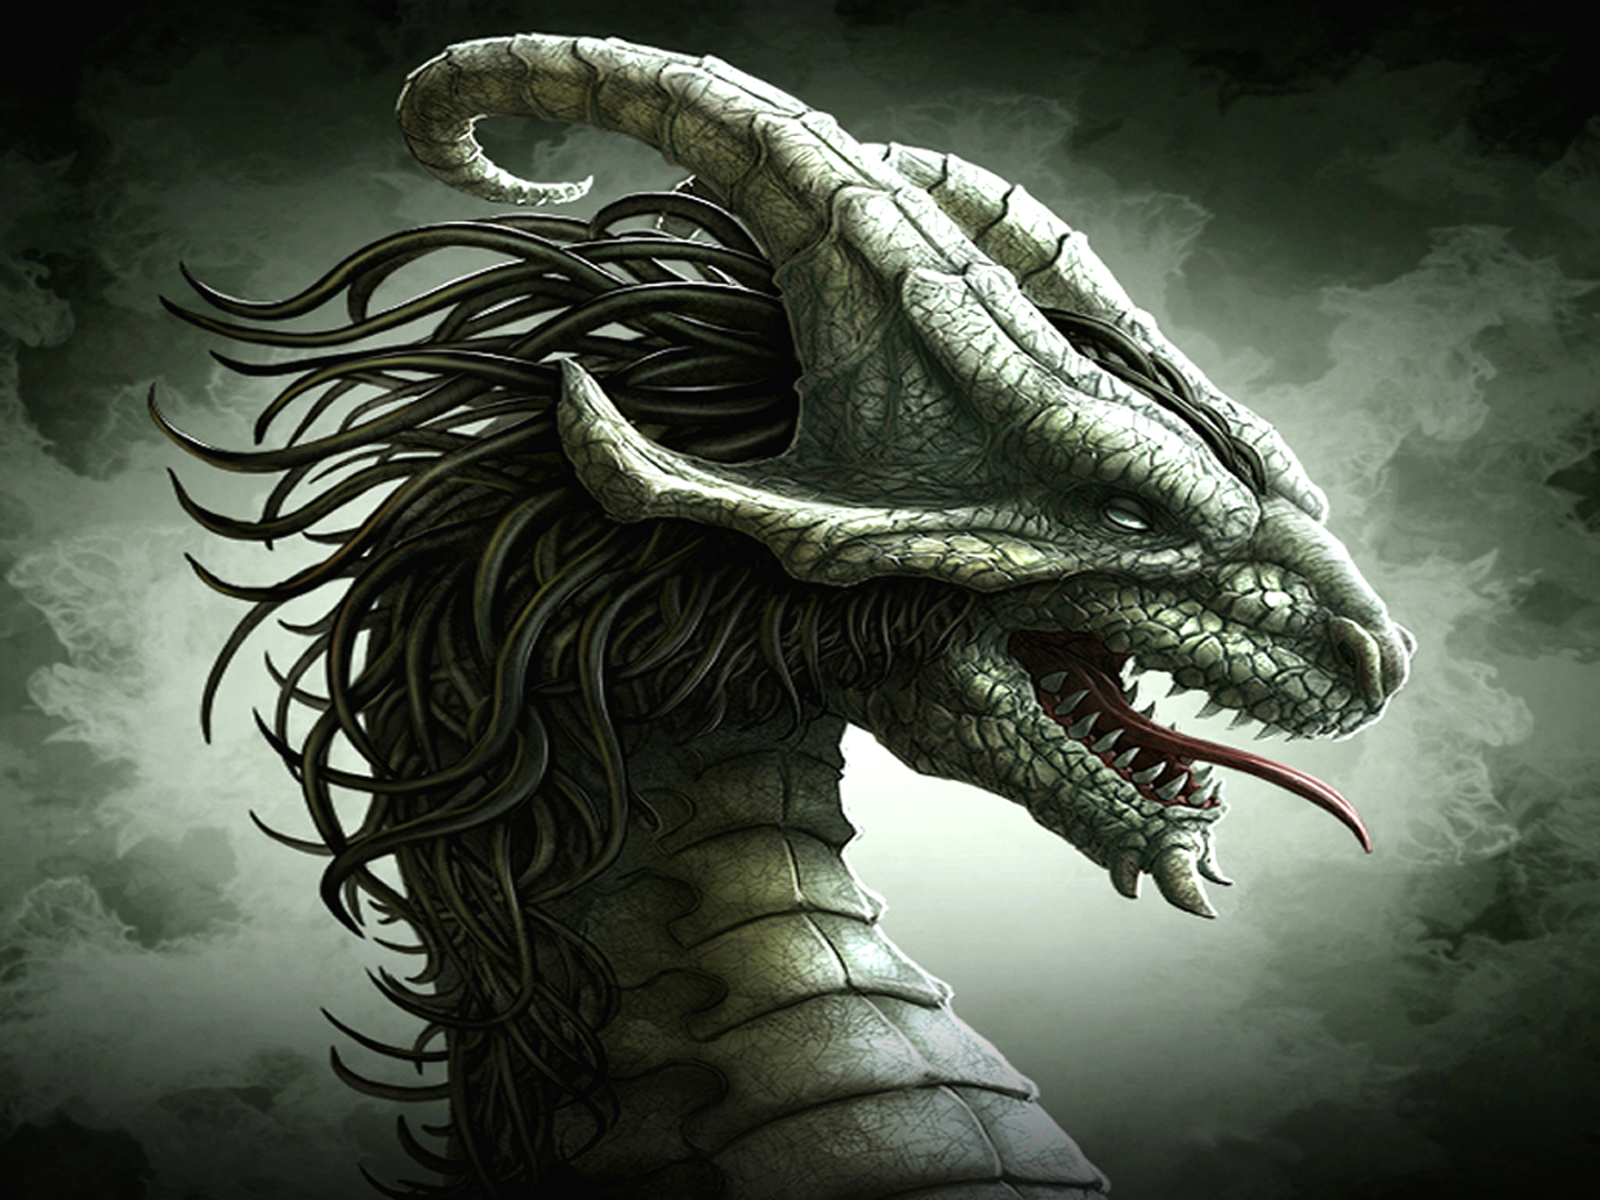 Supreme silver wallpaper and background image 1600x1200 id115464 fantasy dragon wallpaper voltagebd Image collections